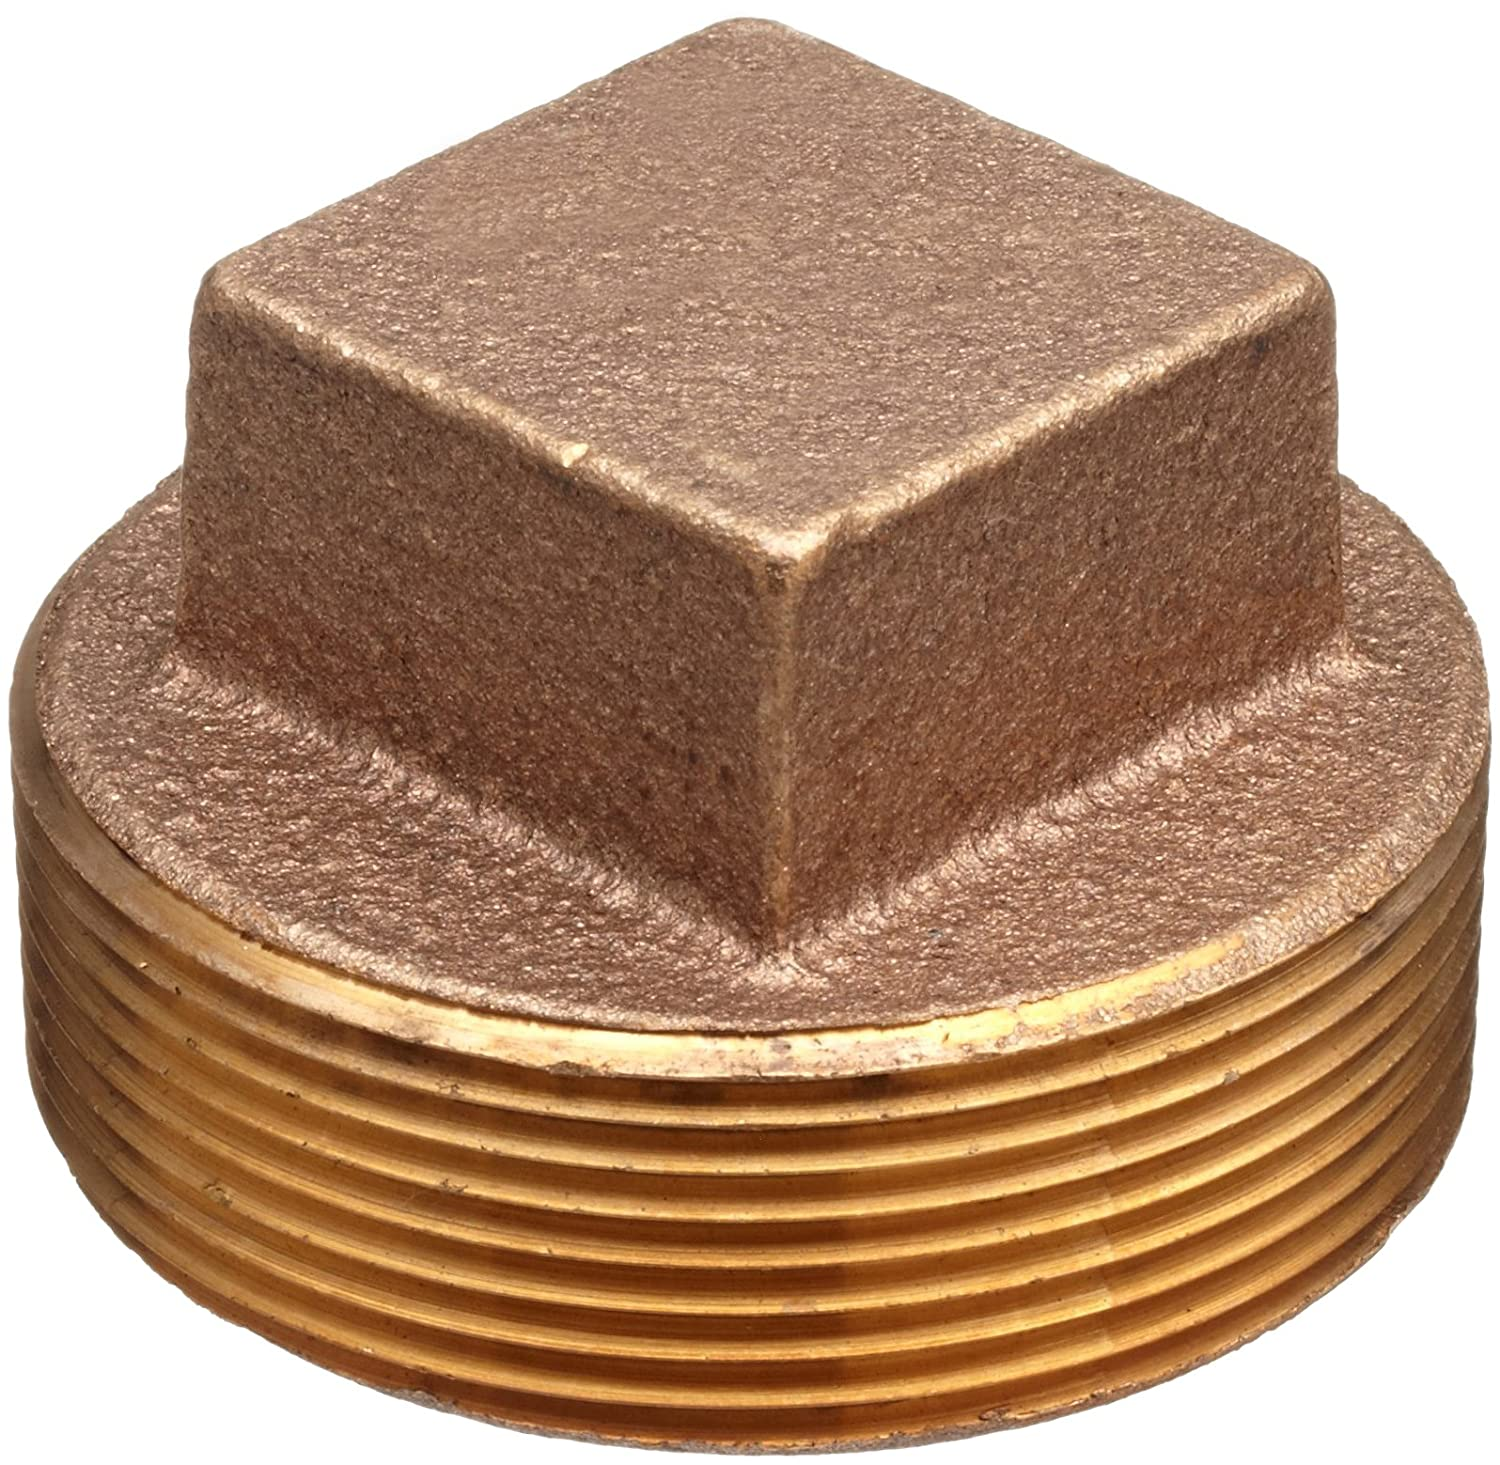 Merit Brass XNL117-16 Lead Free Brass Pipe Fitting 1 NPT Male Pack of 25 Class 125 Square Head Cored Plug